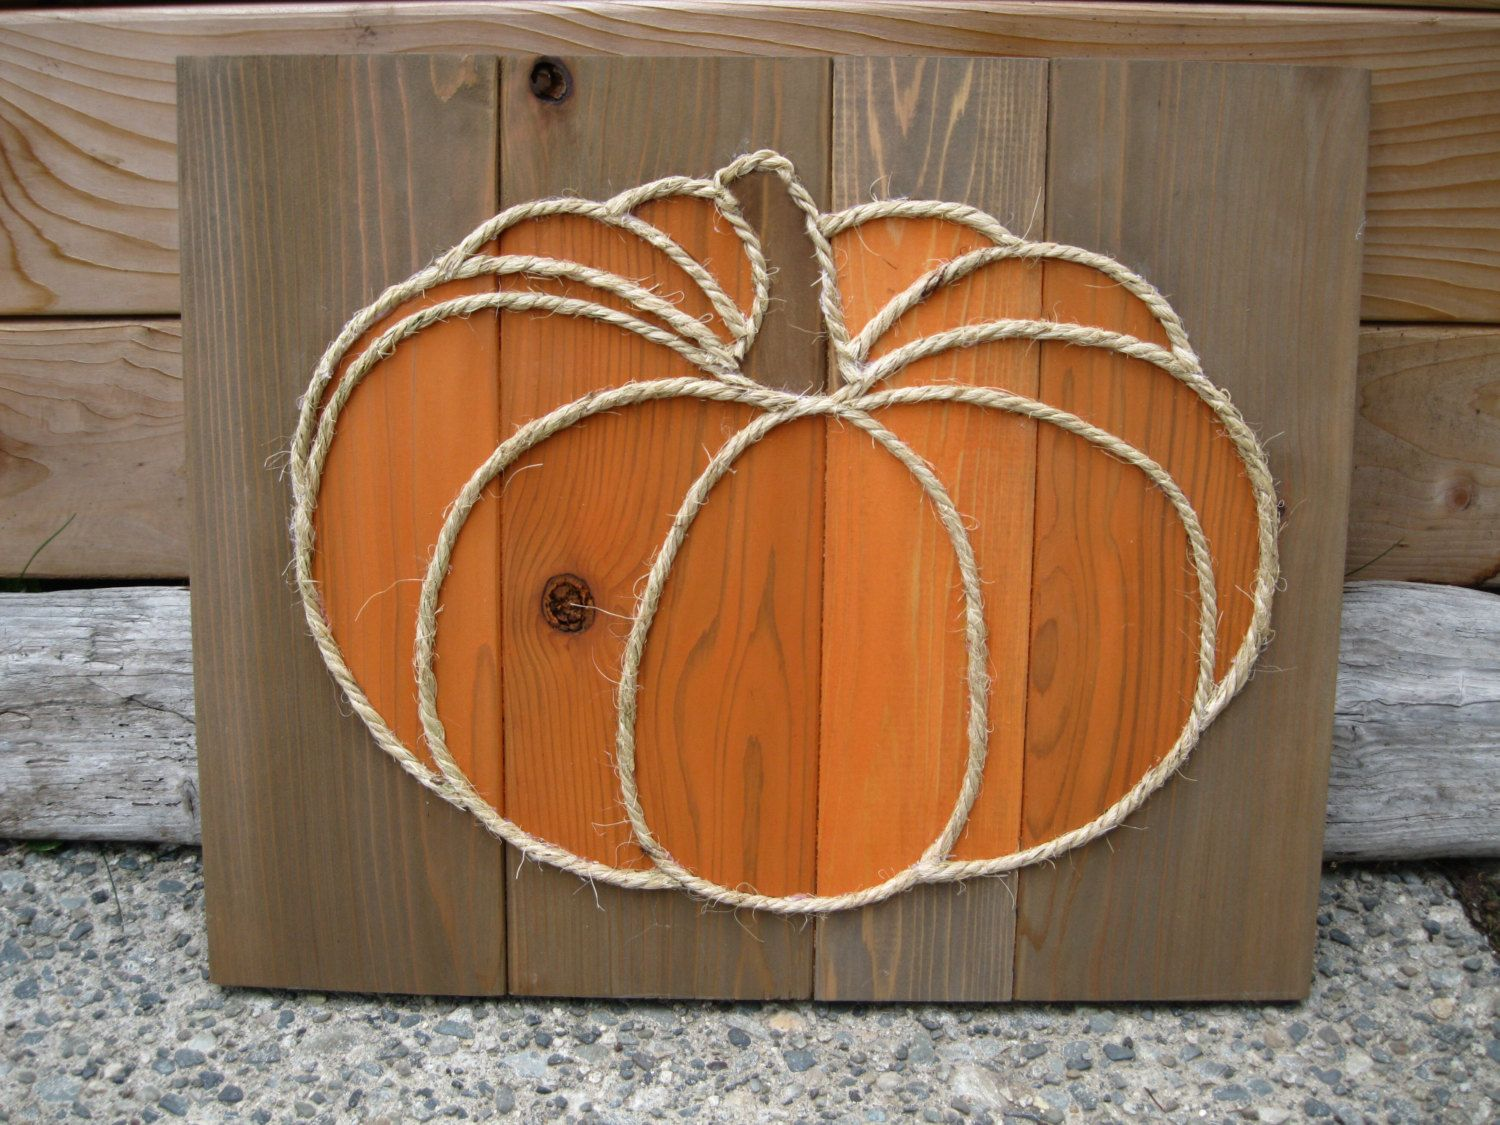 Add this unique rustic pumpkin to your fall home decor